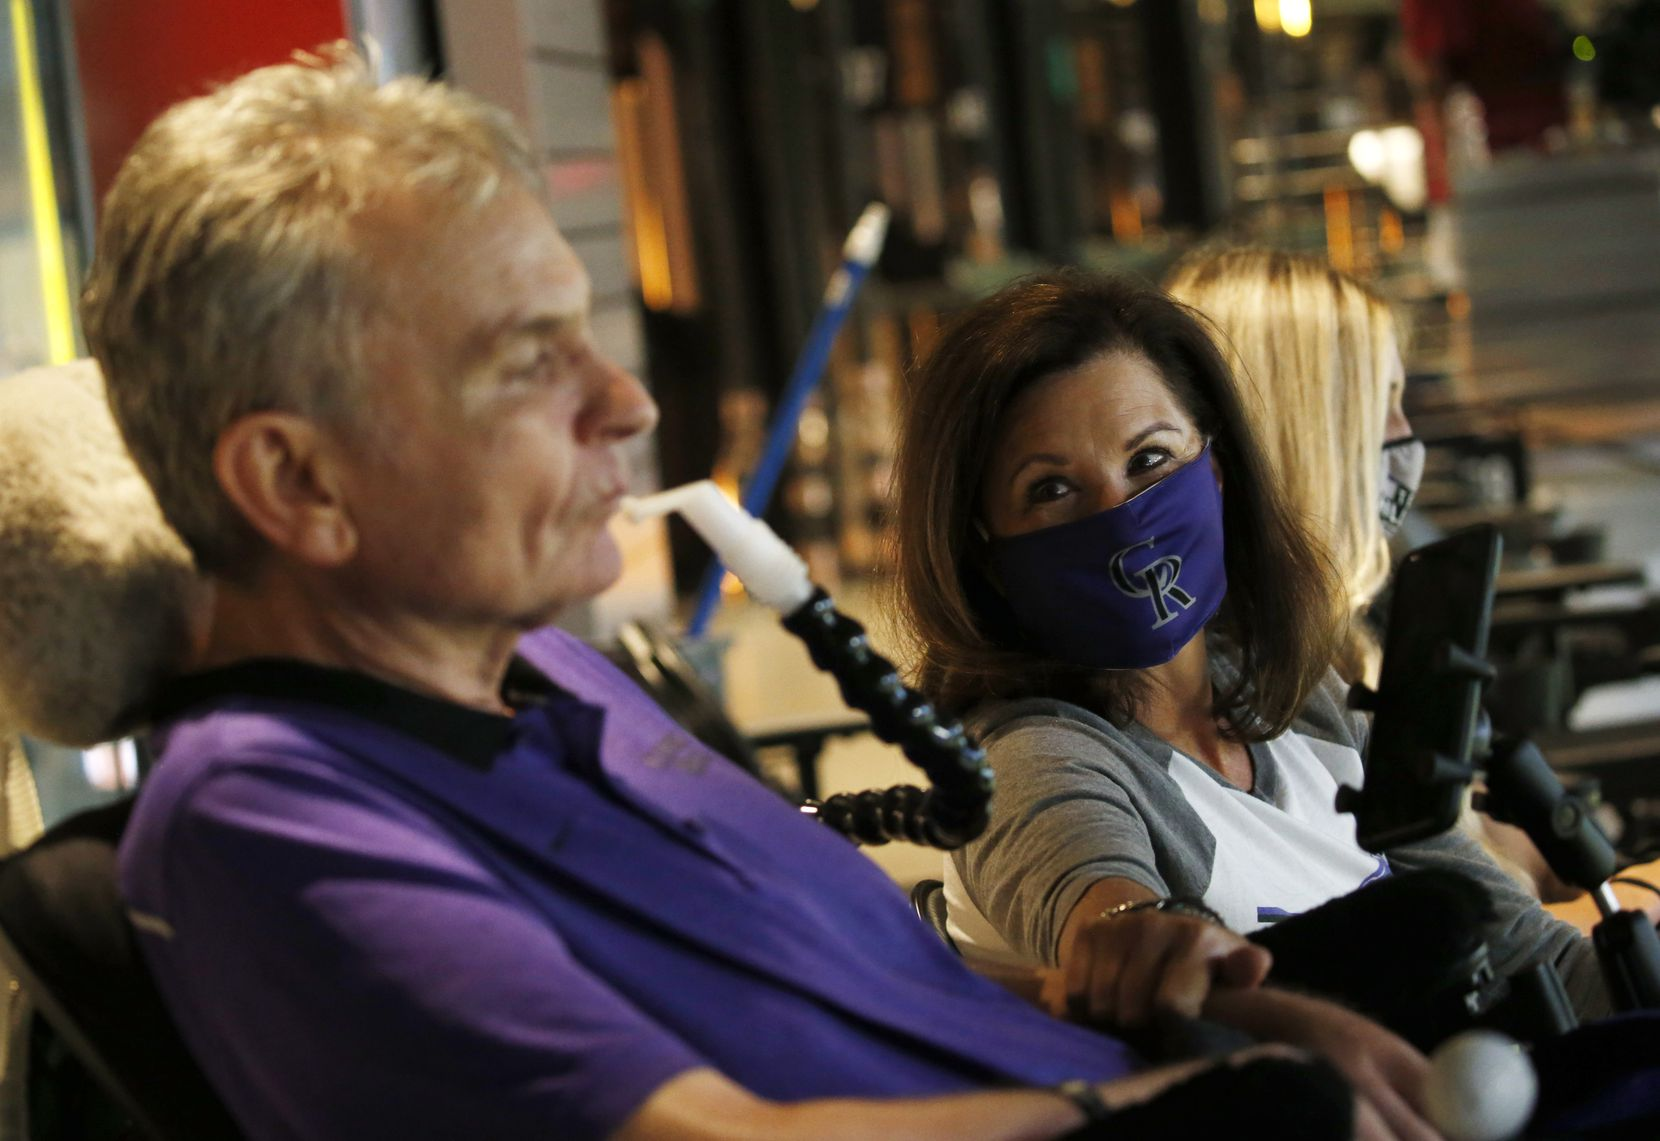 Jim Hilliard with his wife Tamara Hillard and Kat Minnerly watch as their son Colorado Rockies right fielder Sam Hilliard (43) is up at bat in the opening day game between the Texas Rangers and Colorado Rockies at Globe Life Field in Arlington, Texas on Friday, July 24, 2020. Minnerly is the fiancée to Sam Hilliard.